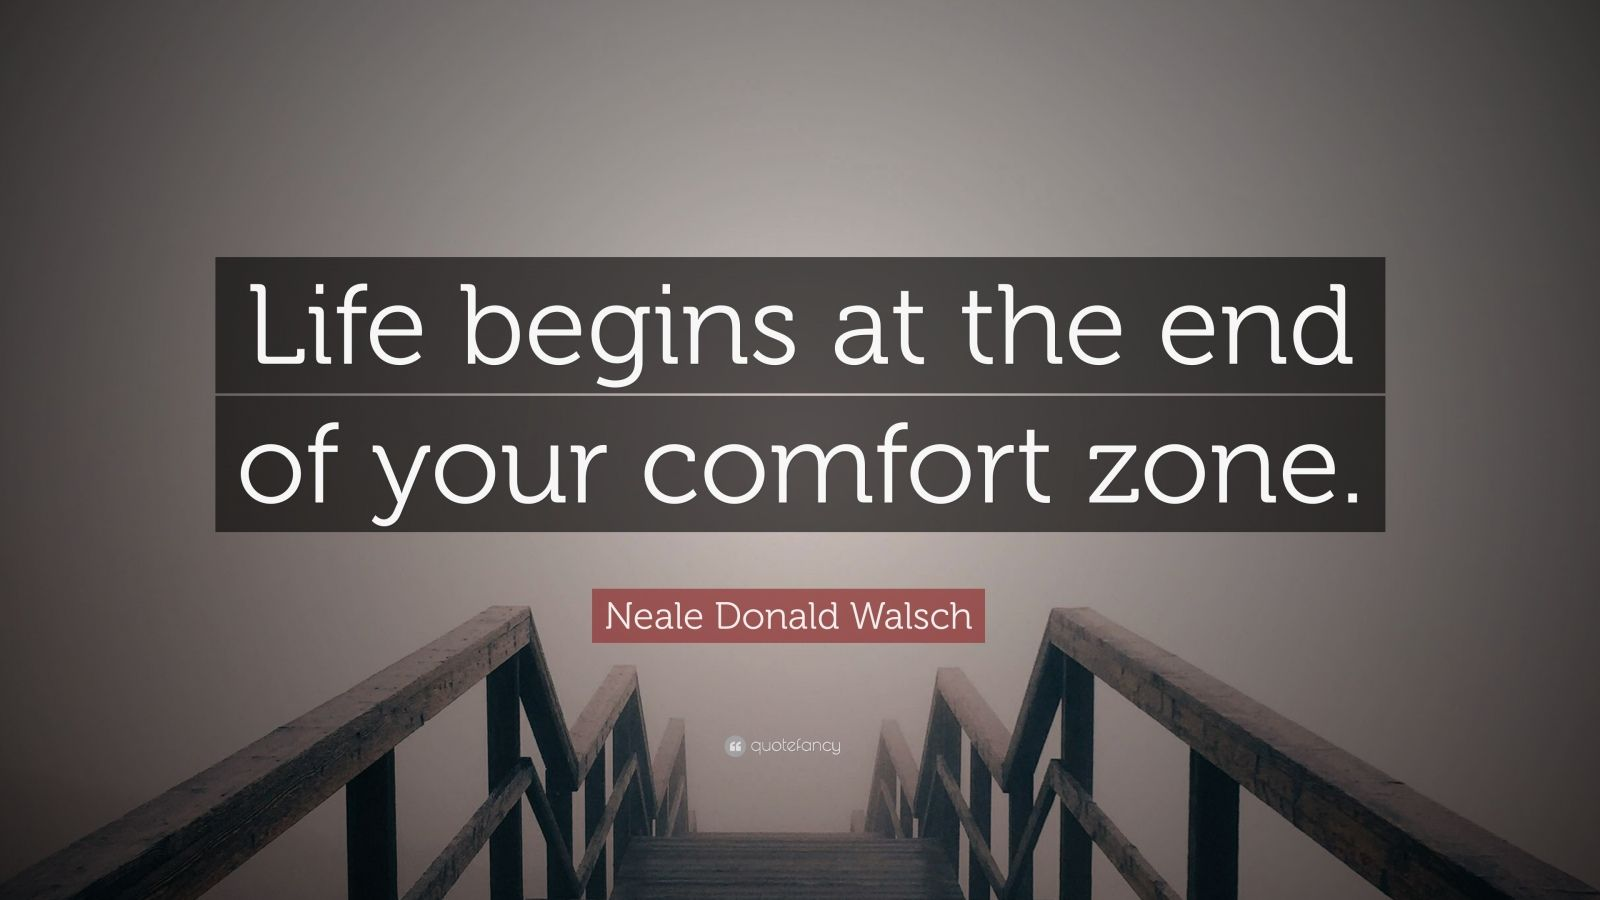 Comfort Zone Motivational Quotes Wallpaper Neale Donald Walsch Quote Life Begins At The End Of Your